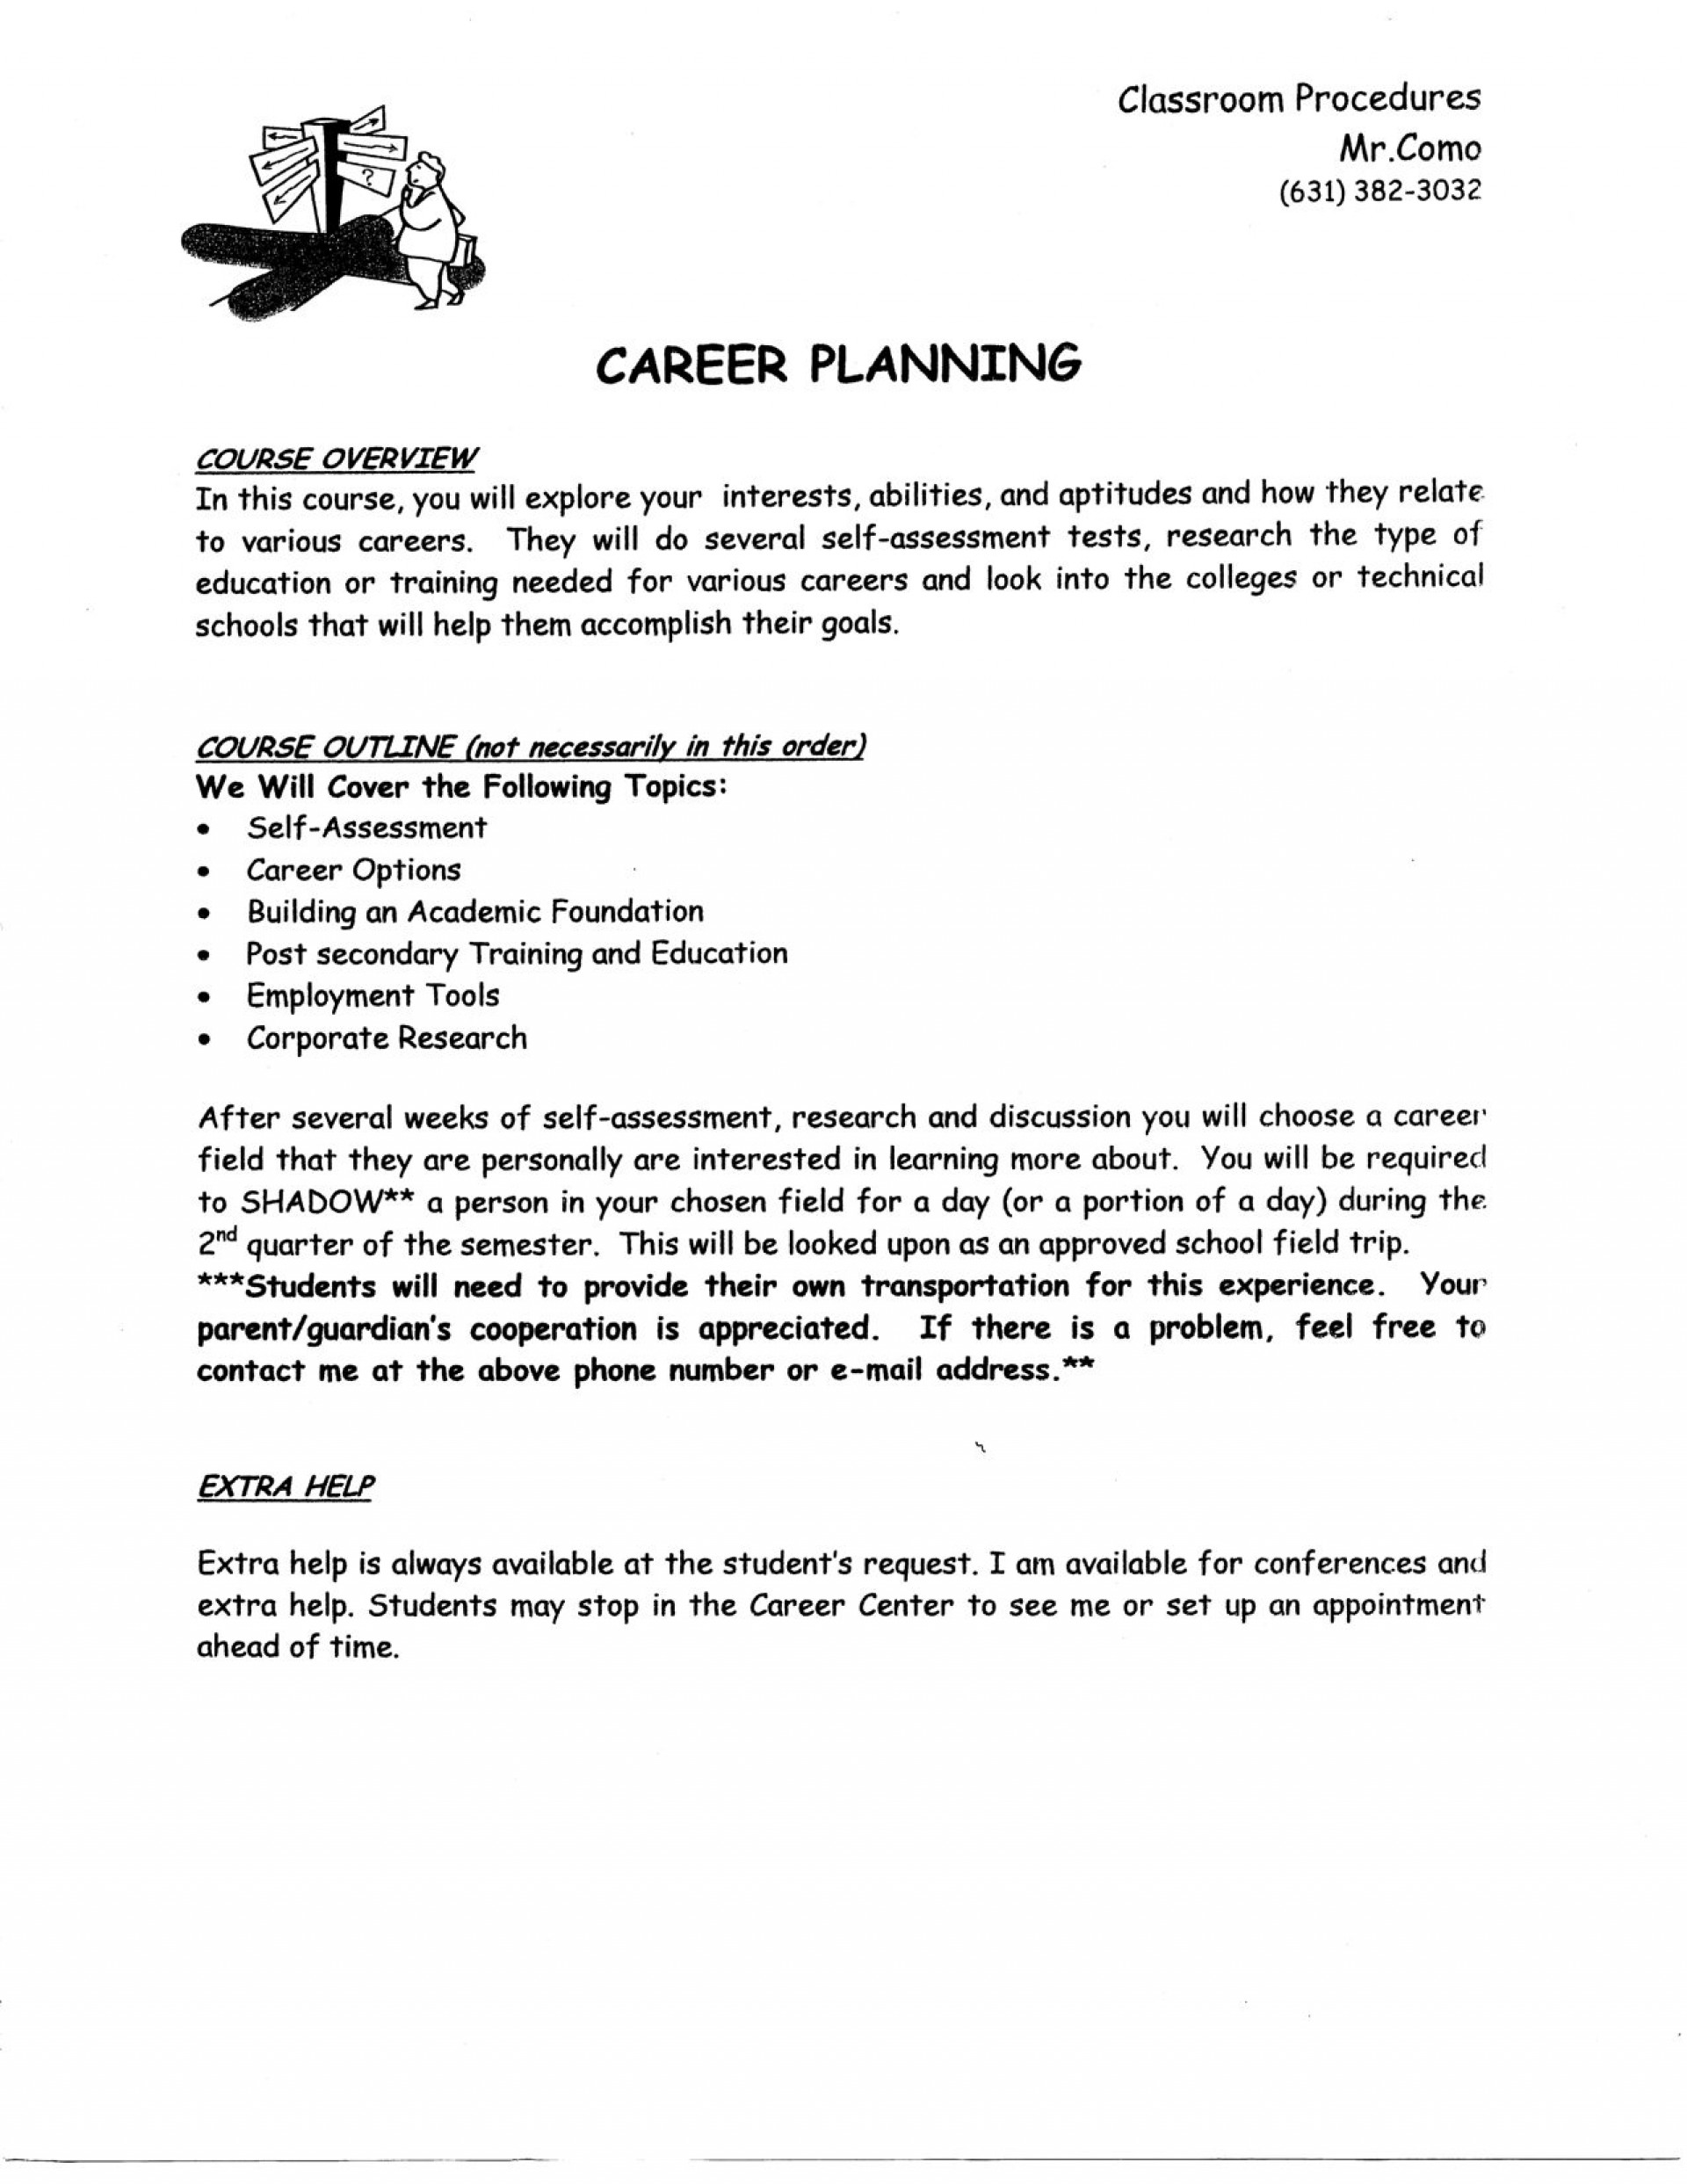 009 Career Planning002 Essay On Breathtaking Goals And Aspirations Sample Choosing A Path 1920